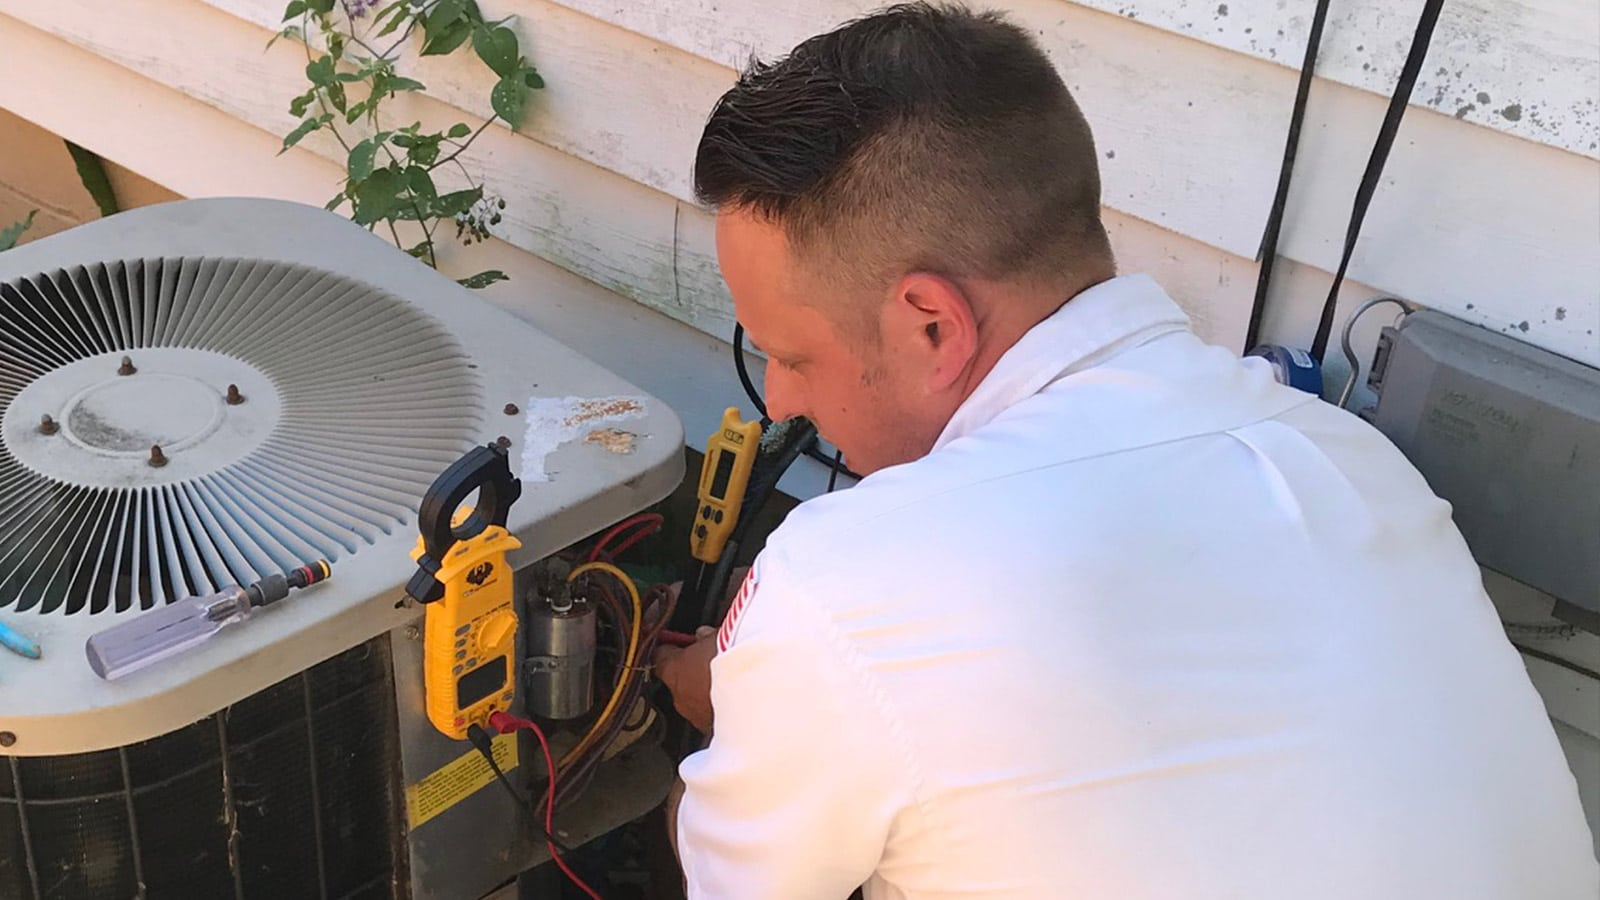 The Best Advice For Buying HVAC Equipment